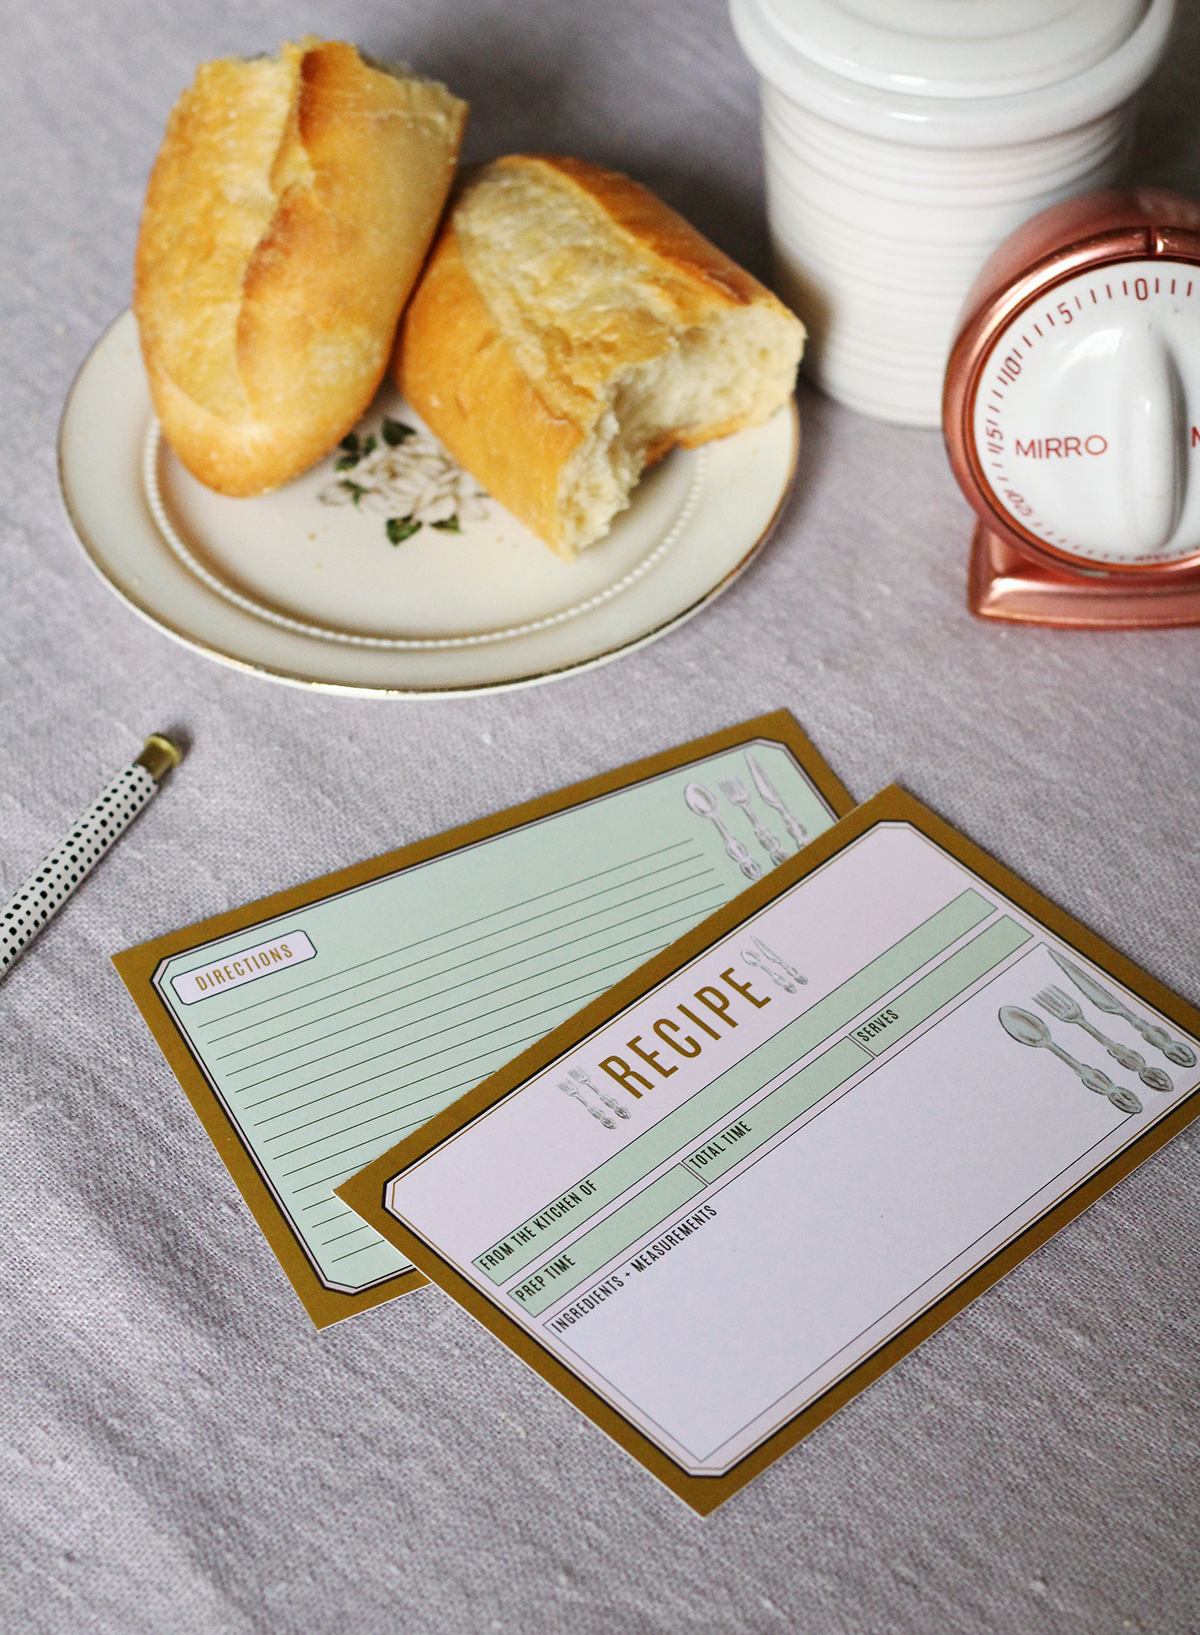 Make your recipes look cute with these adorable recipe cards